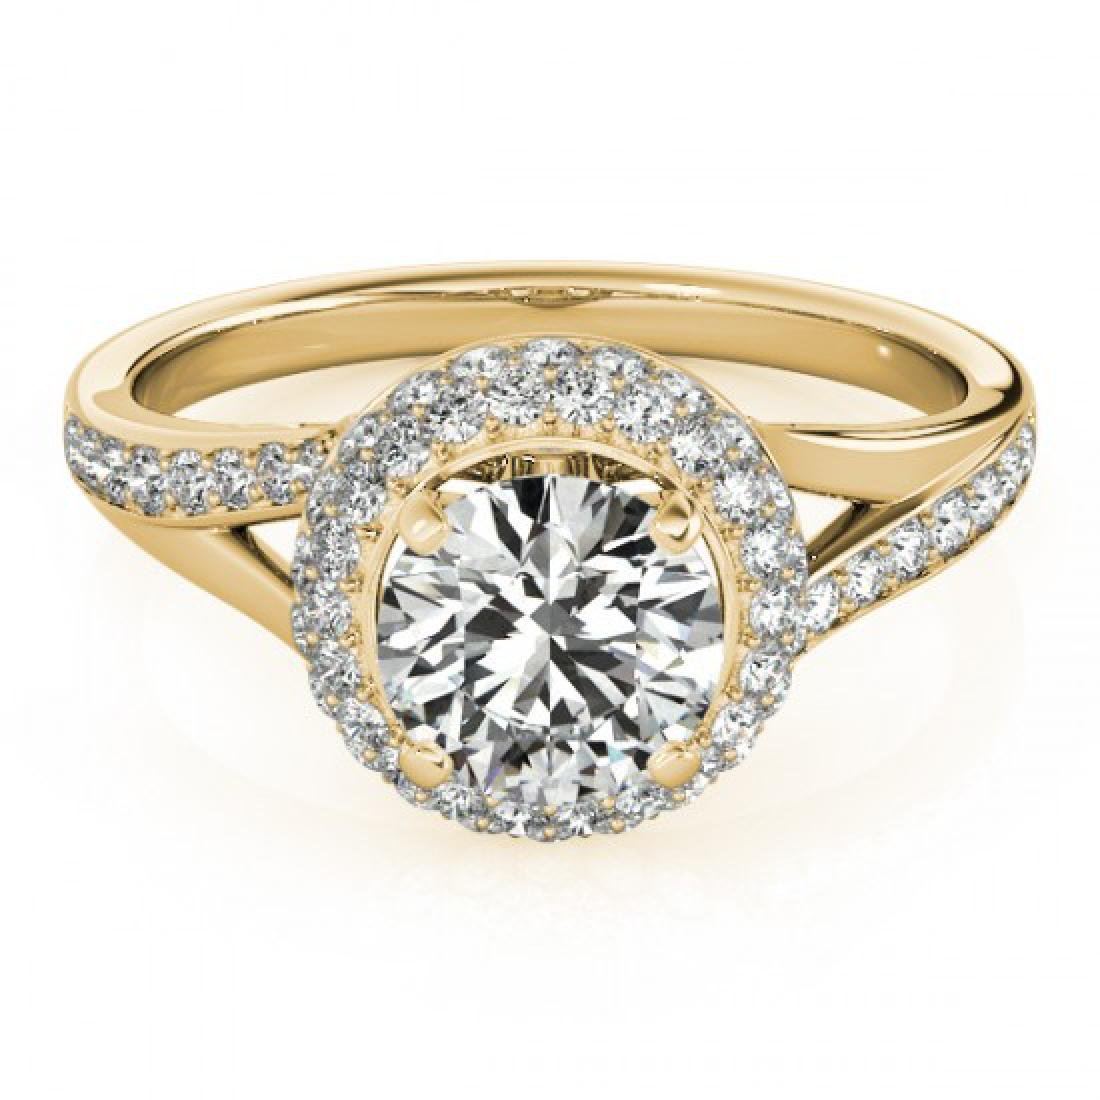 1.6 CTW Certified VS/SI Diamond Solitaire Halo Ring 14K